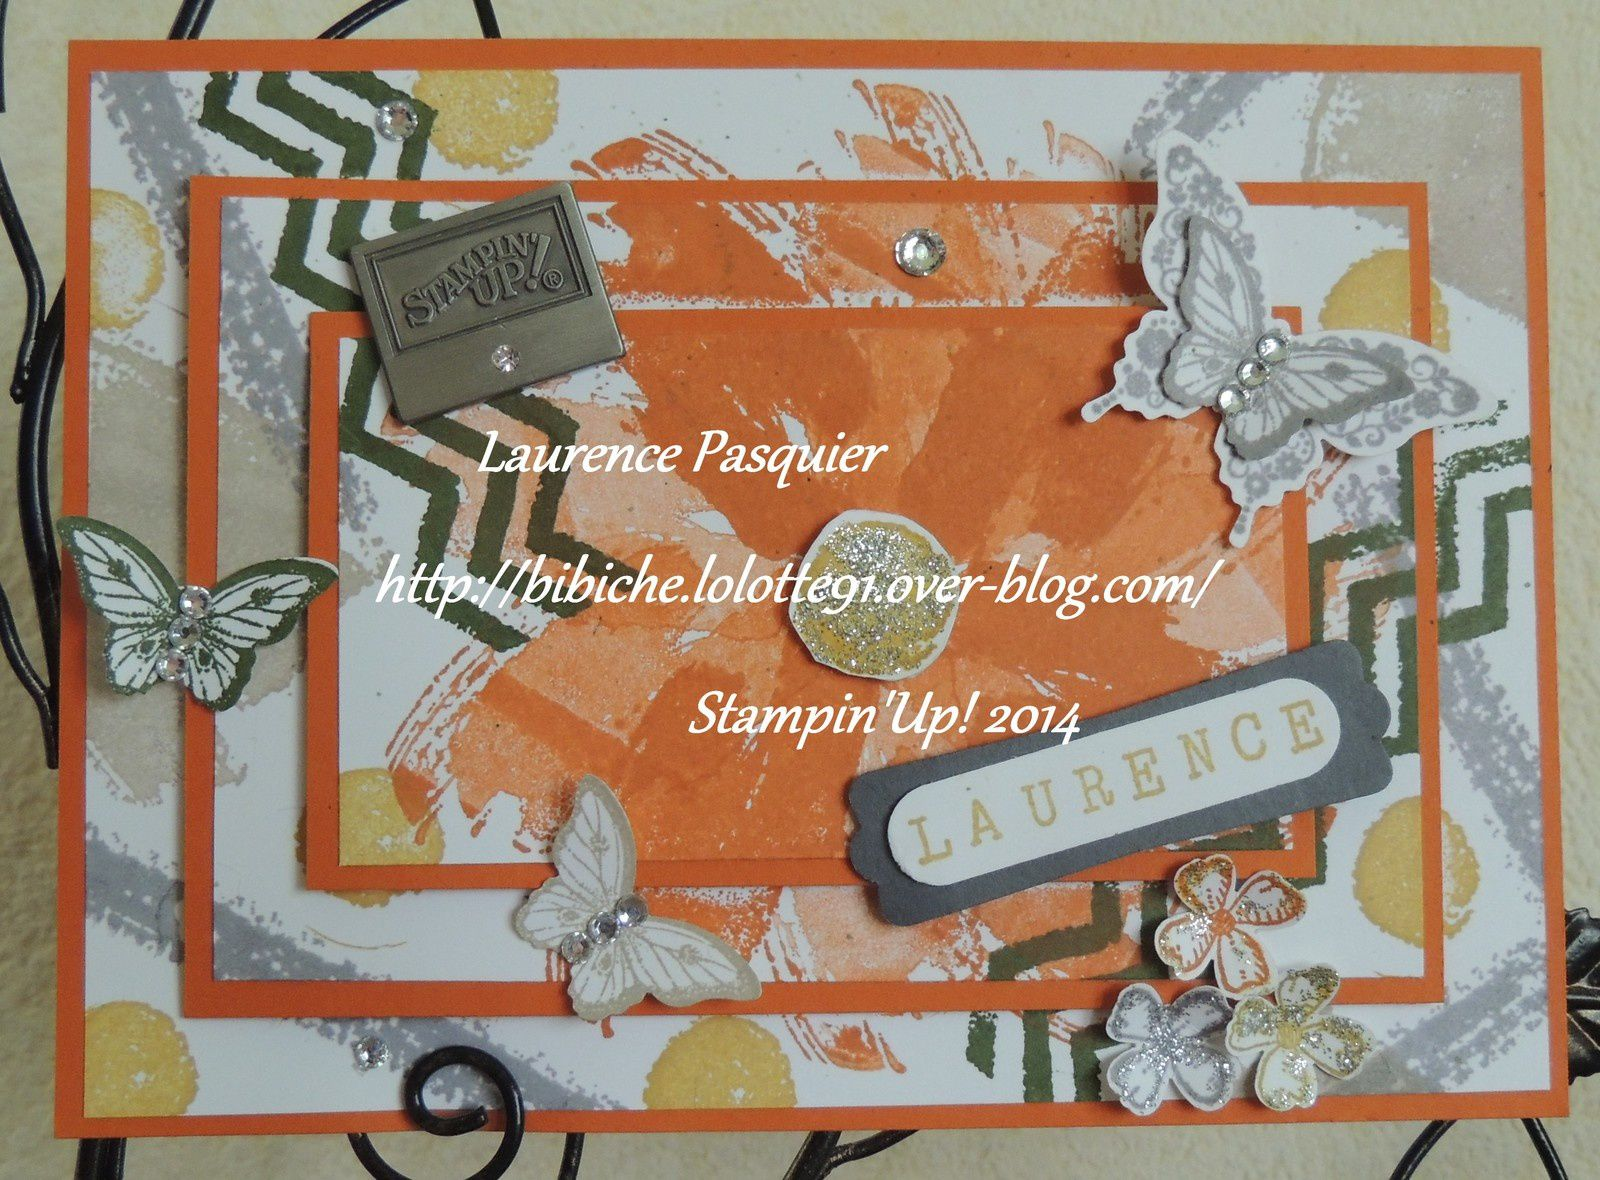 Formation Stampin'Up!